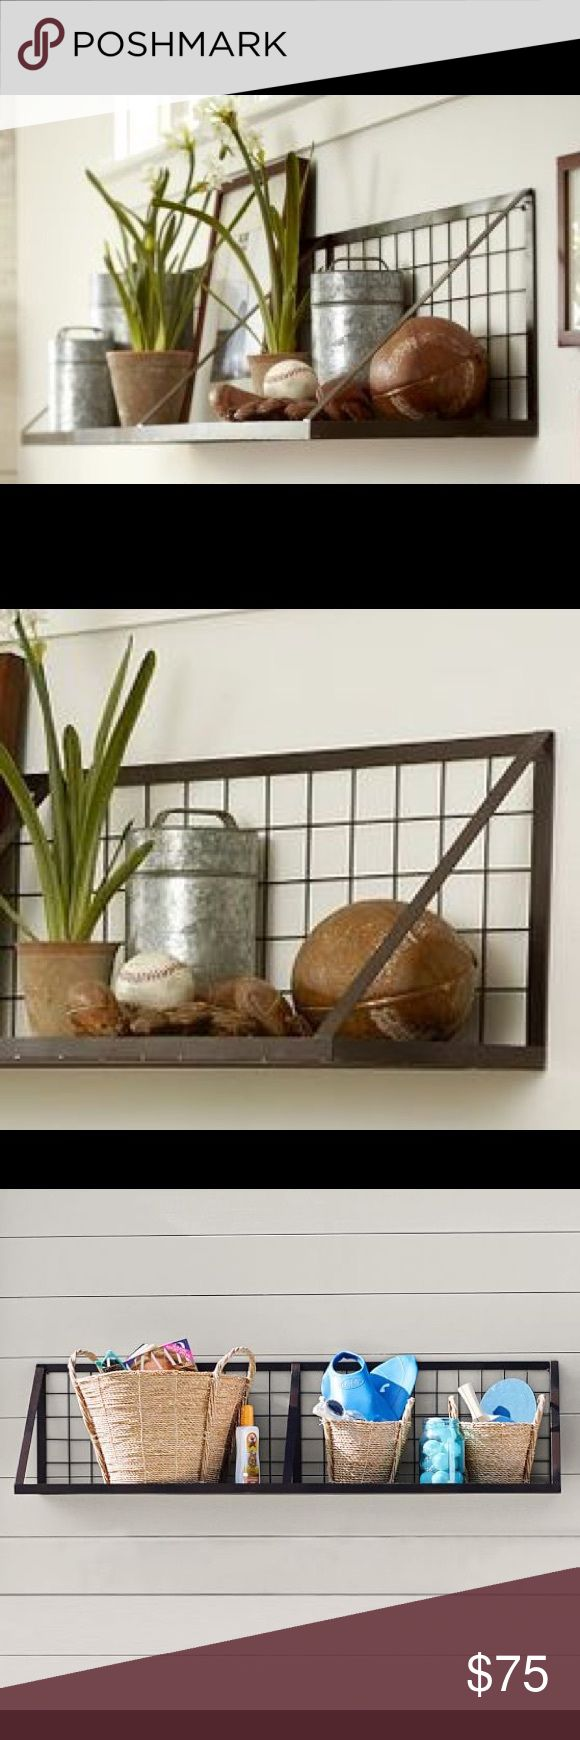 Pottery Barn wall Shelf Kellan wall mount shelf from Potter Barn.  No longer available in stores. pottery barn Other